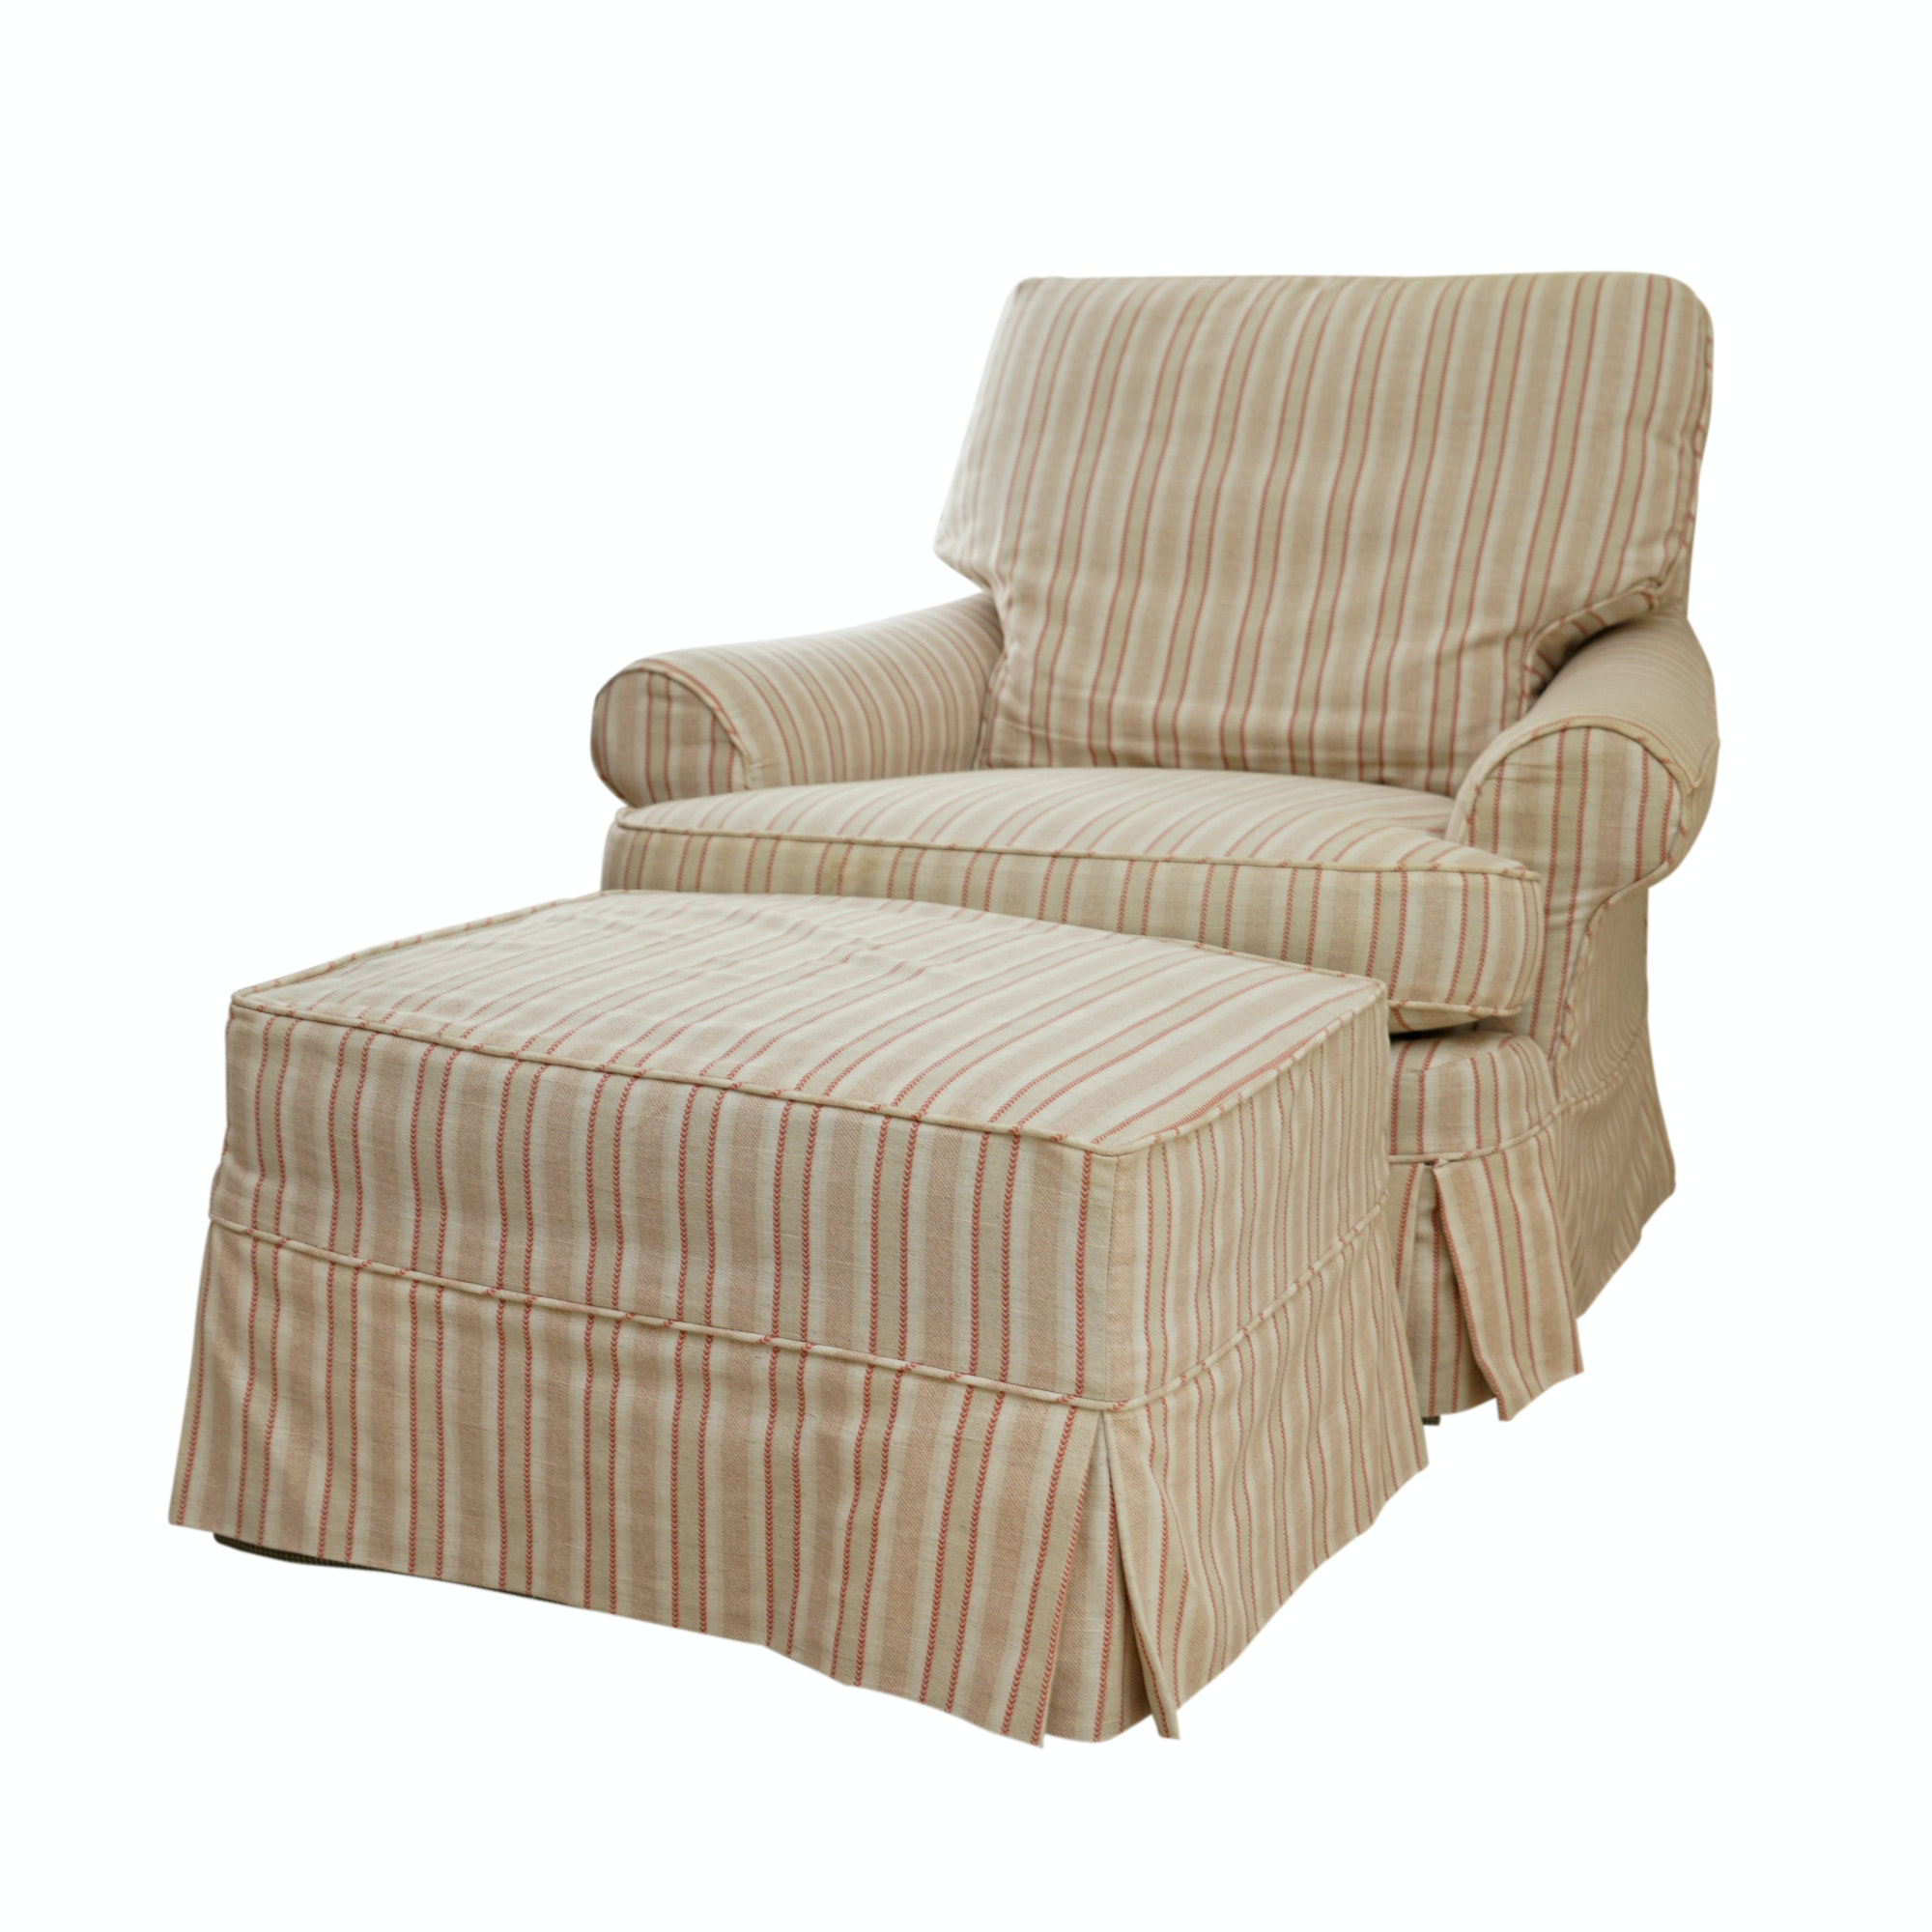 Upholstered Swivel Rocking Chair With Ottoman By Jessica Charles ...